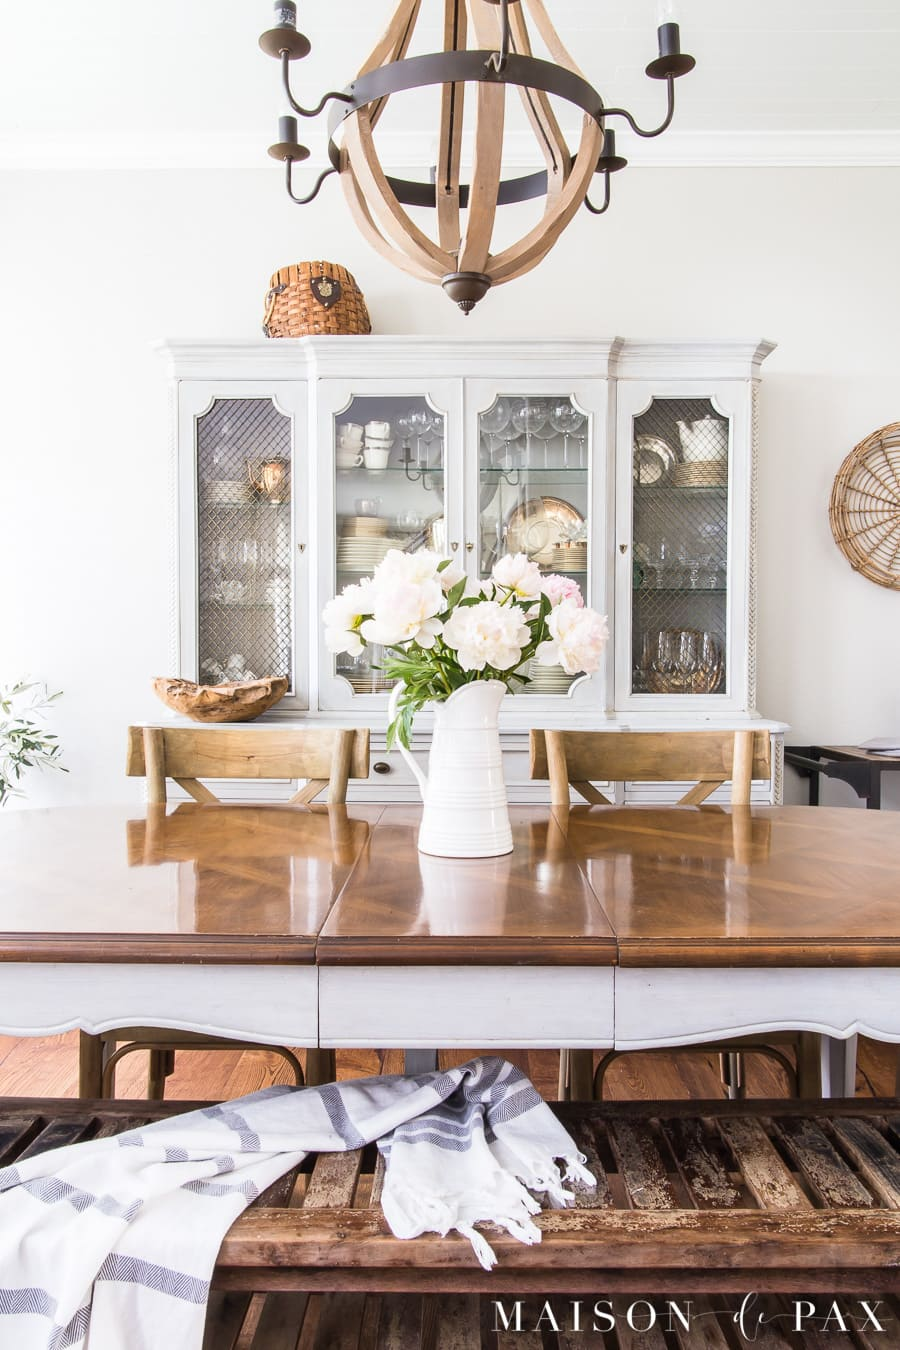 A French Country Dining Room Embodies A Rustic Elegance With Neutrals, Wood  Tones, And A Peony Centerpiece.